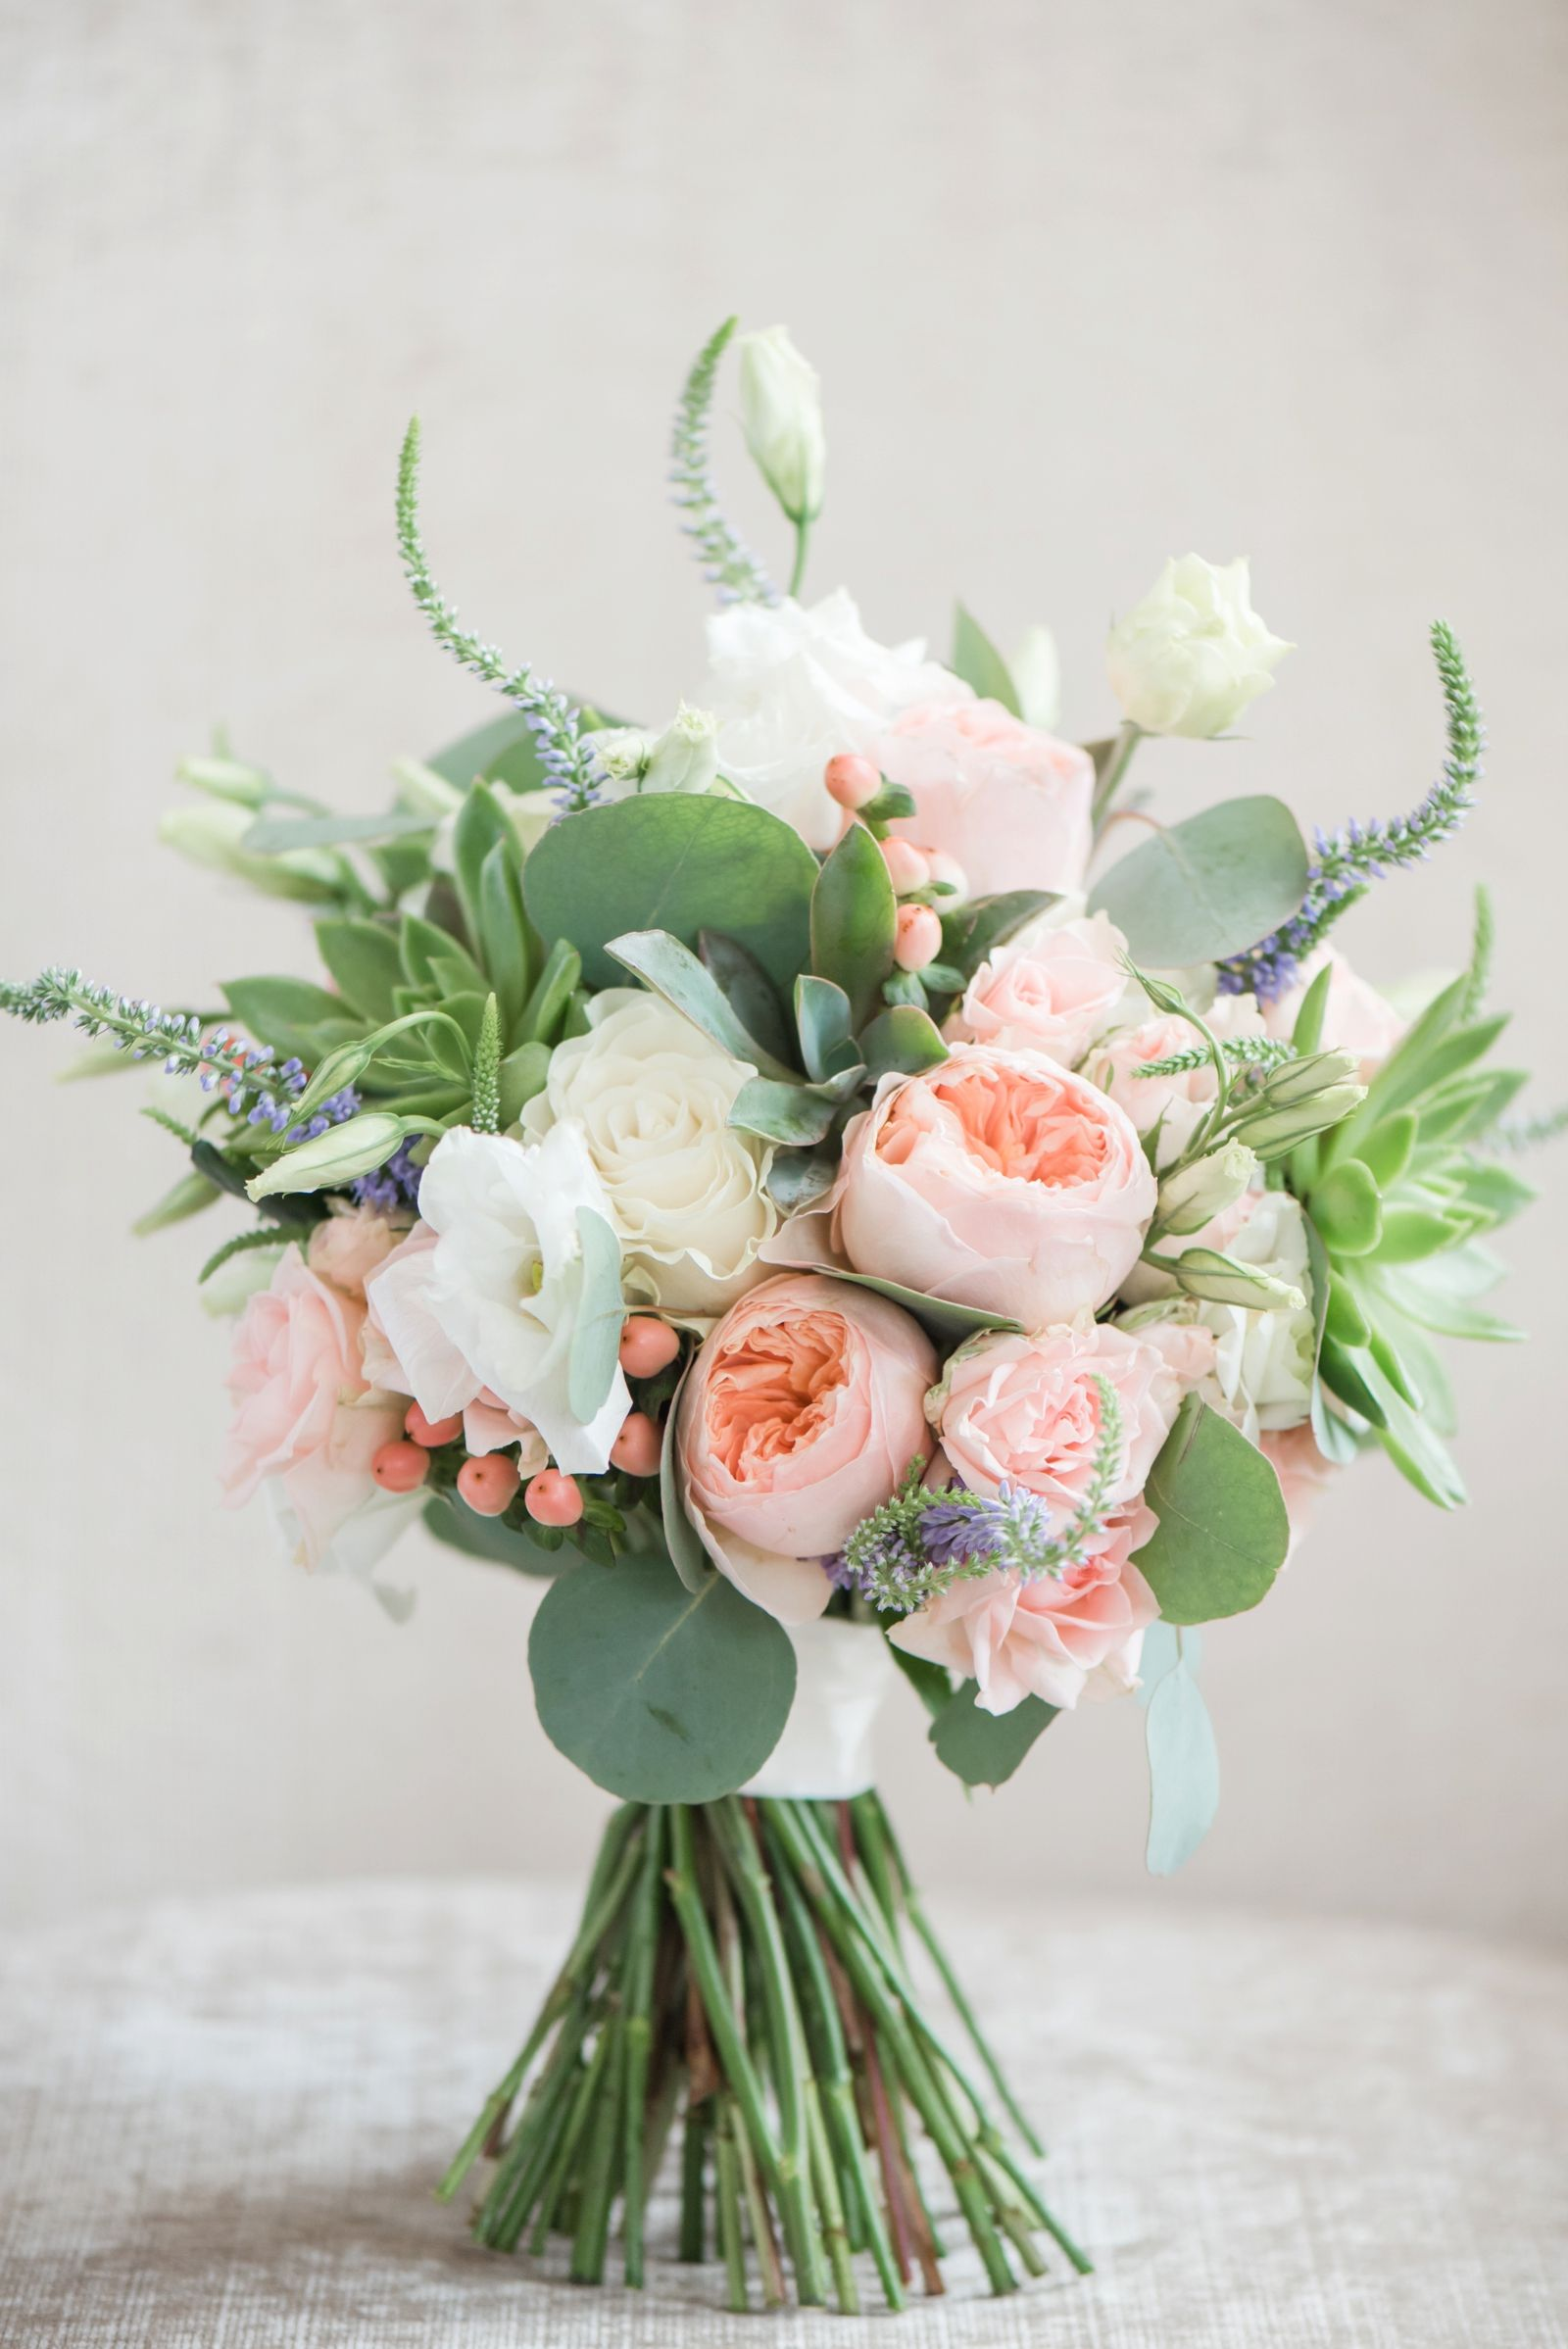 Wedding bouquet from lewis ginter botanical garden wedding in bridal bouquets dhlflorist Choice Image